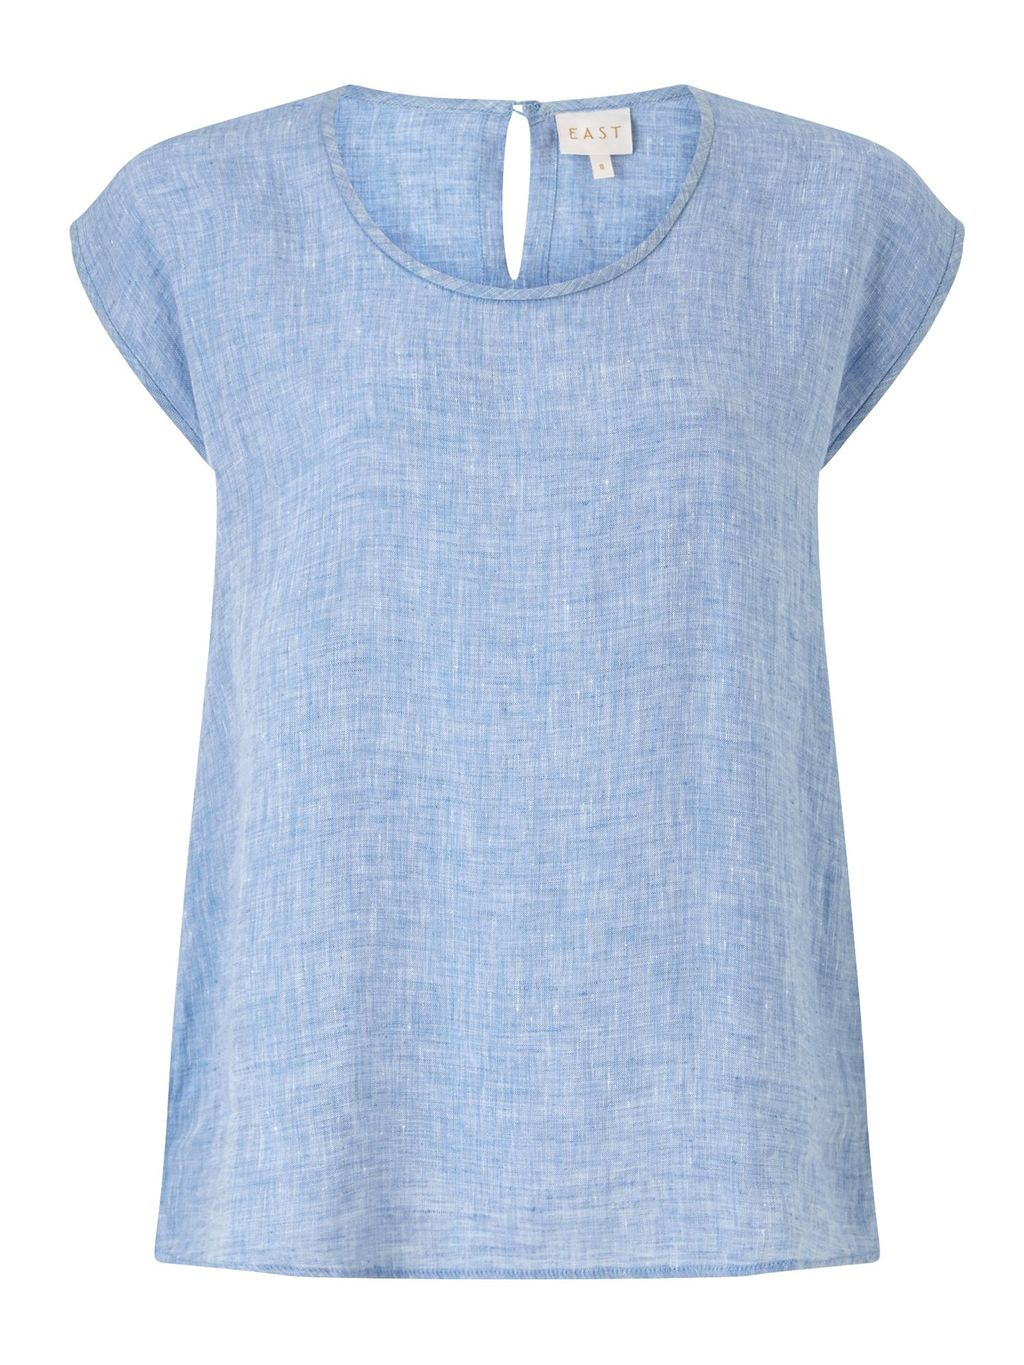 Linen X Dye Shell Top, Blue - pattern: plain; predominant colour: pale blue; occasions: casual; length: standard; style: top; fibres: linen - 100%; fit: body skimming; neckline: crew; sleeve length: short sleeve; sleeve style: standard; texture group: linen; pattern type: fabric; season: s/s 2016; wardrobe: highlight